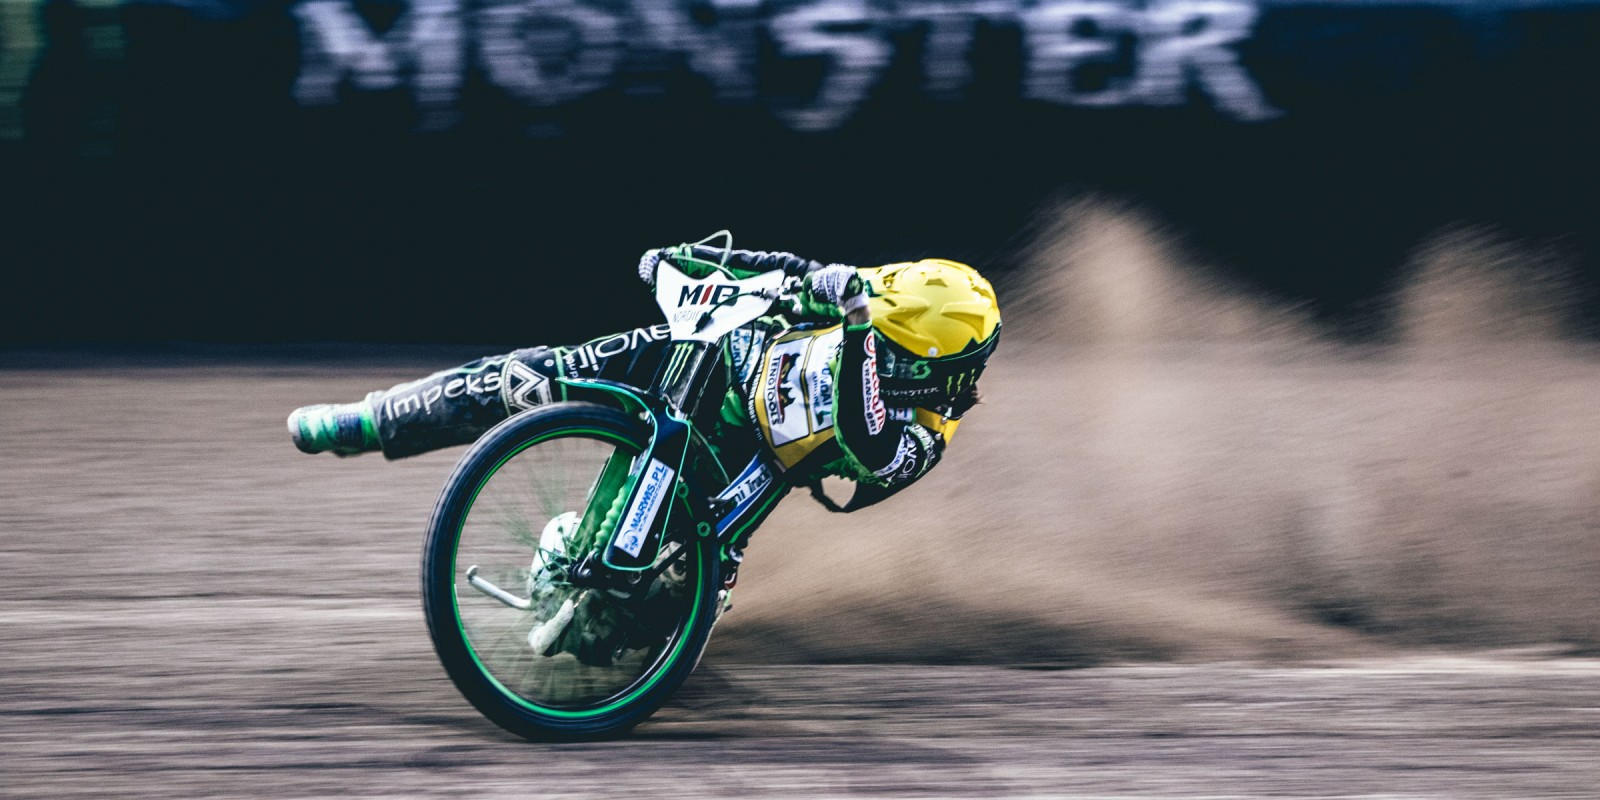 Images from Round 8 of the 2017 Speedway GP season in Gorzow, Poland